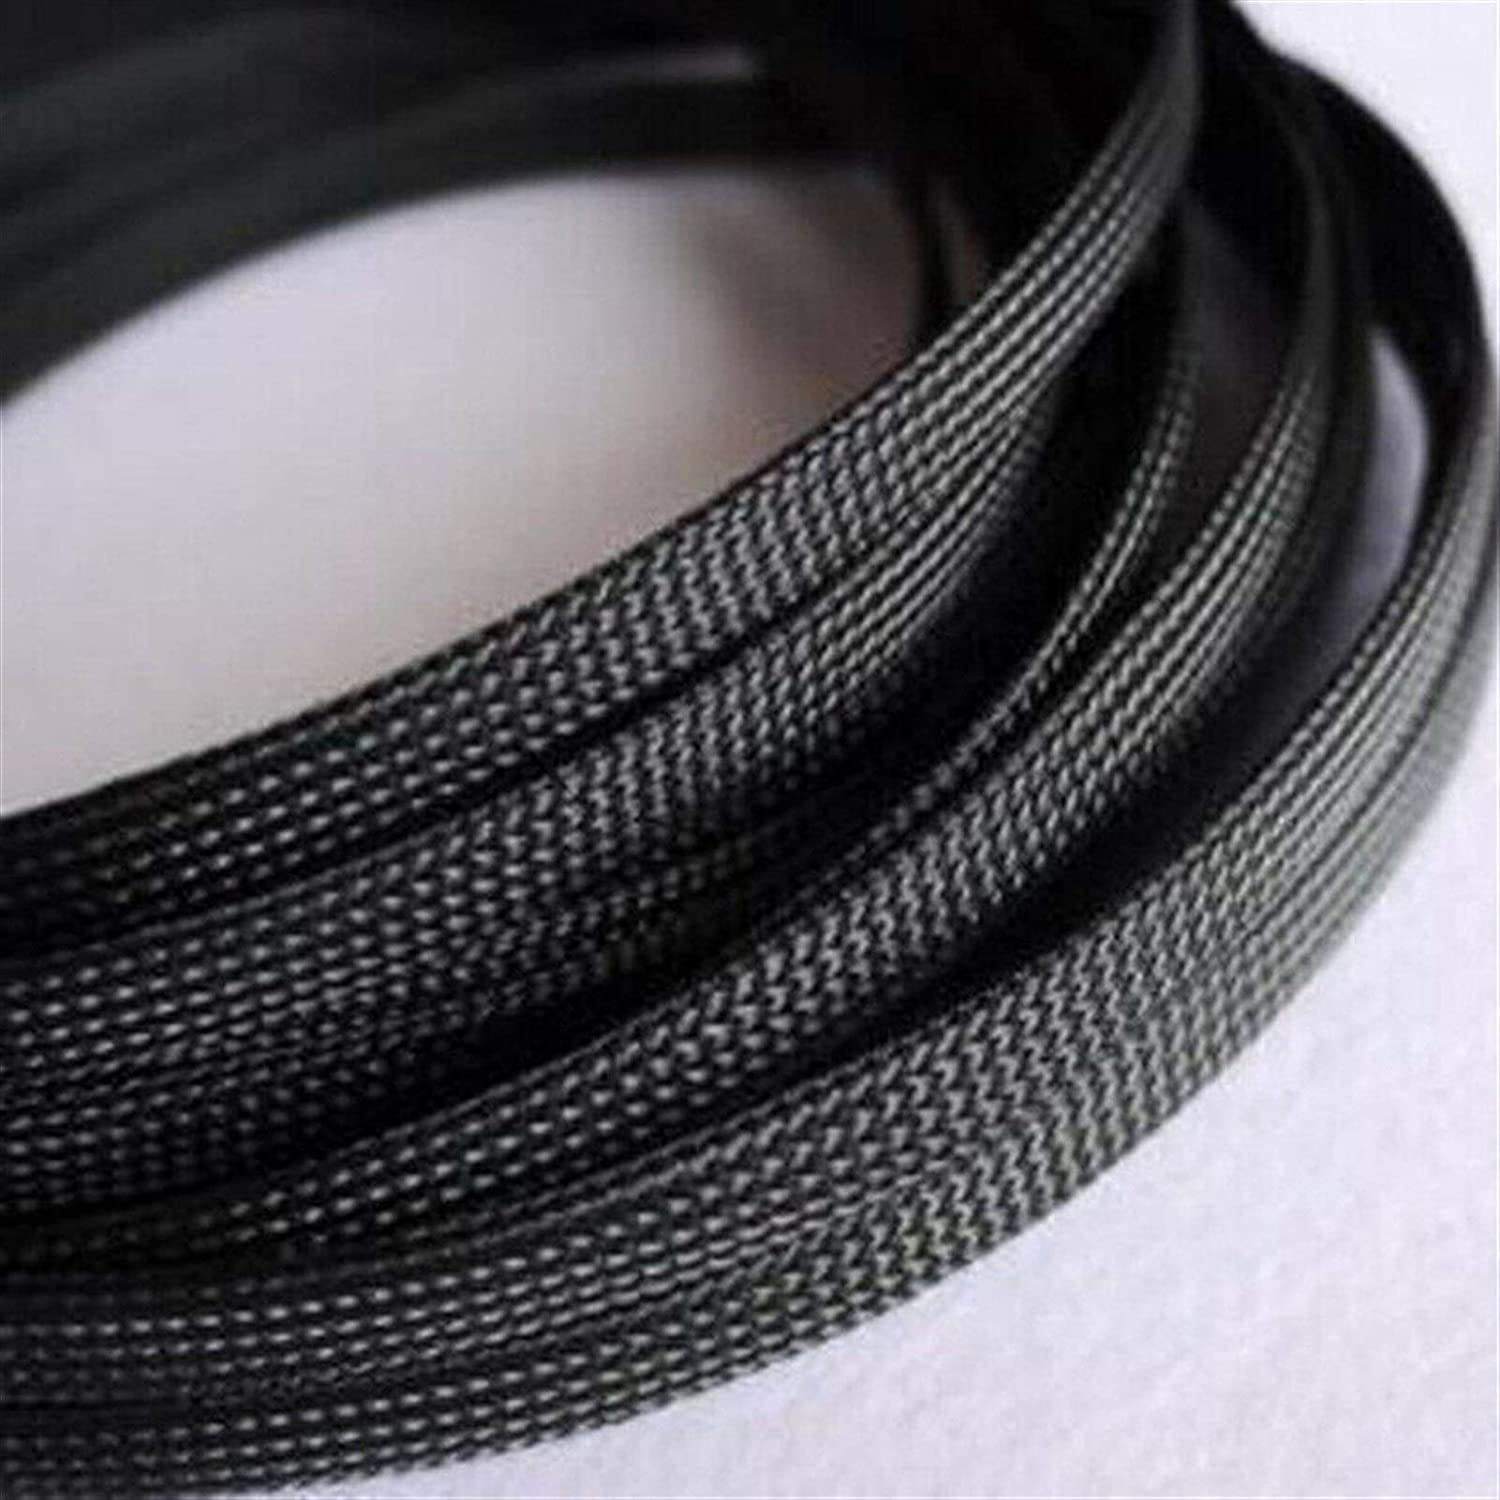 Cable Tidy Sleeves 1-20M online shopping Max 59% OFF Black 3-100mm Snakeskin